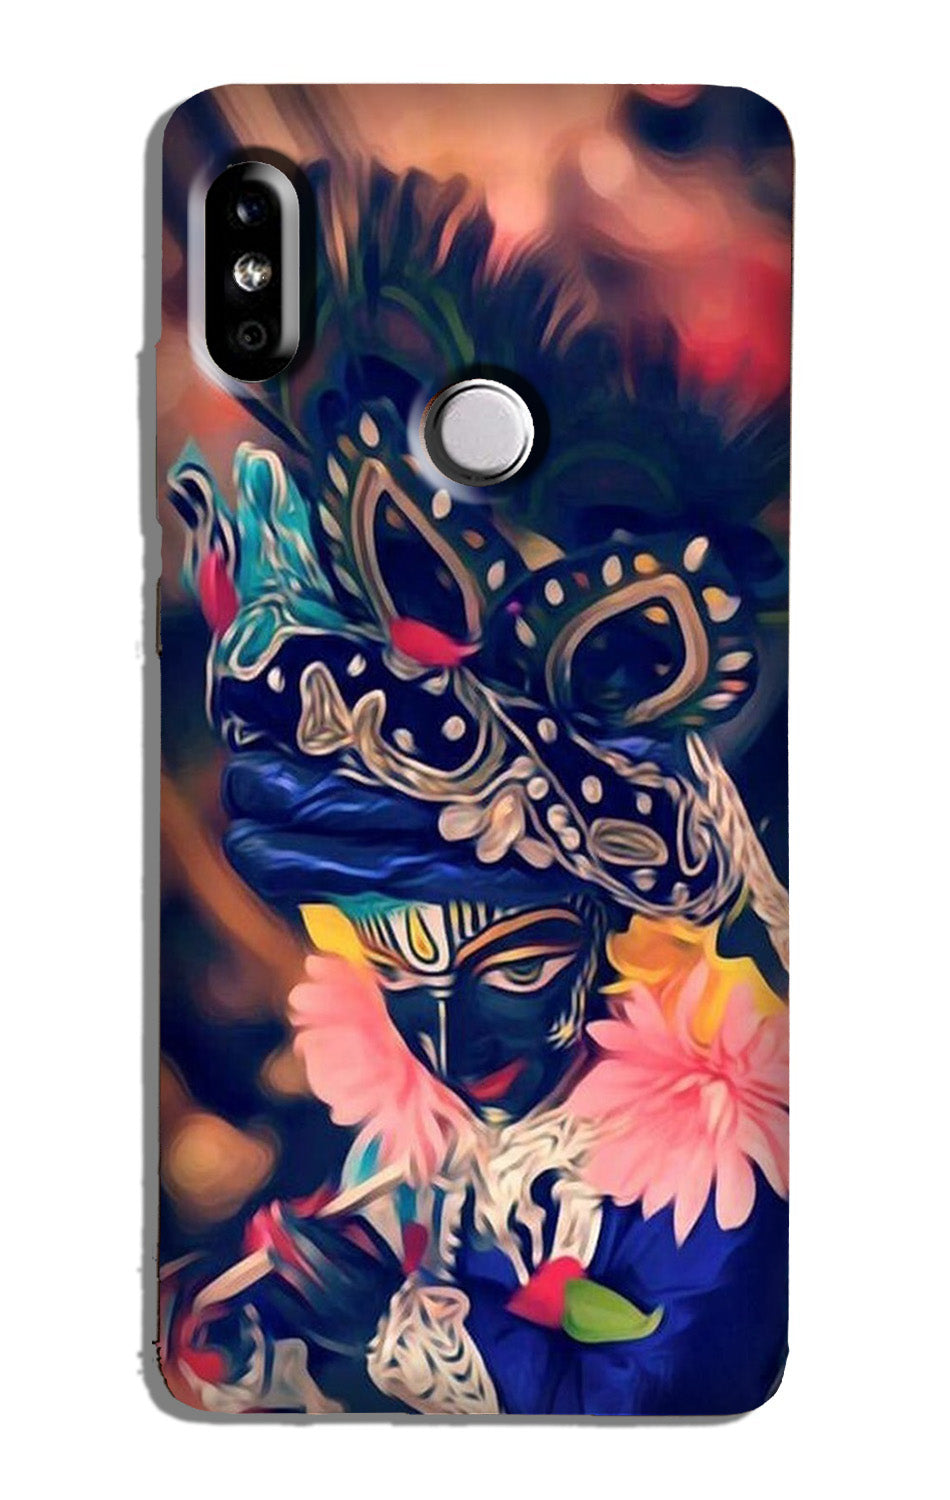 Lord Krishna Case for Redmi Note 6 Pro